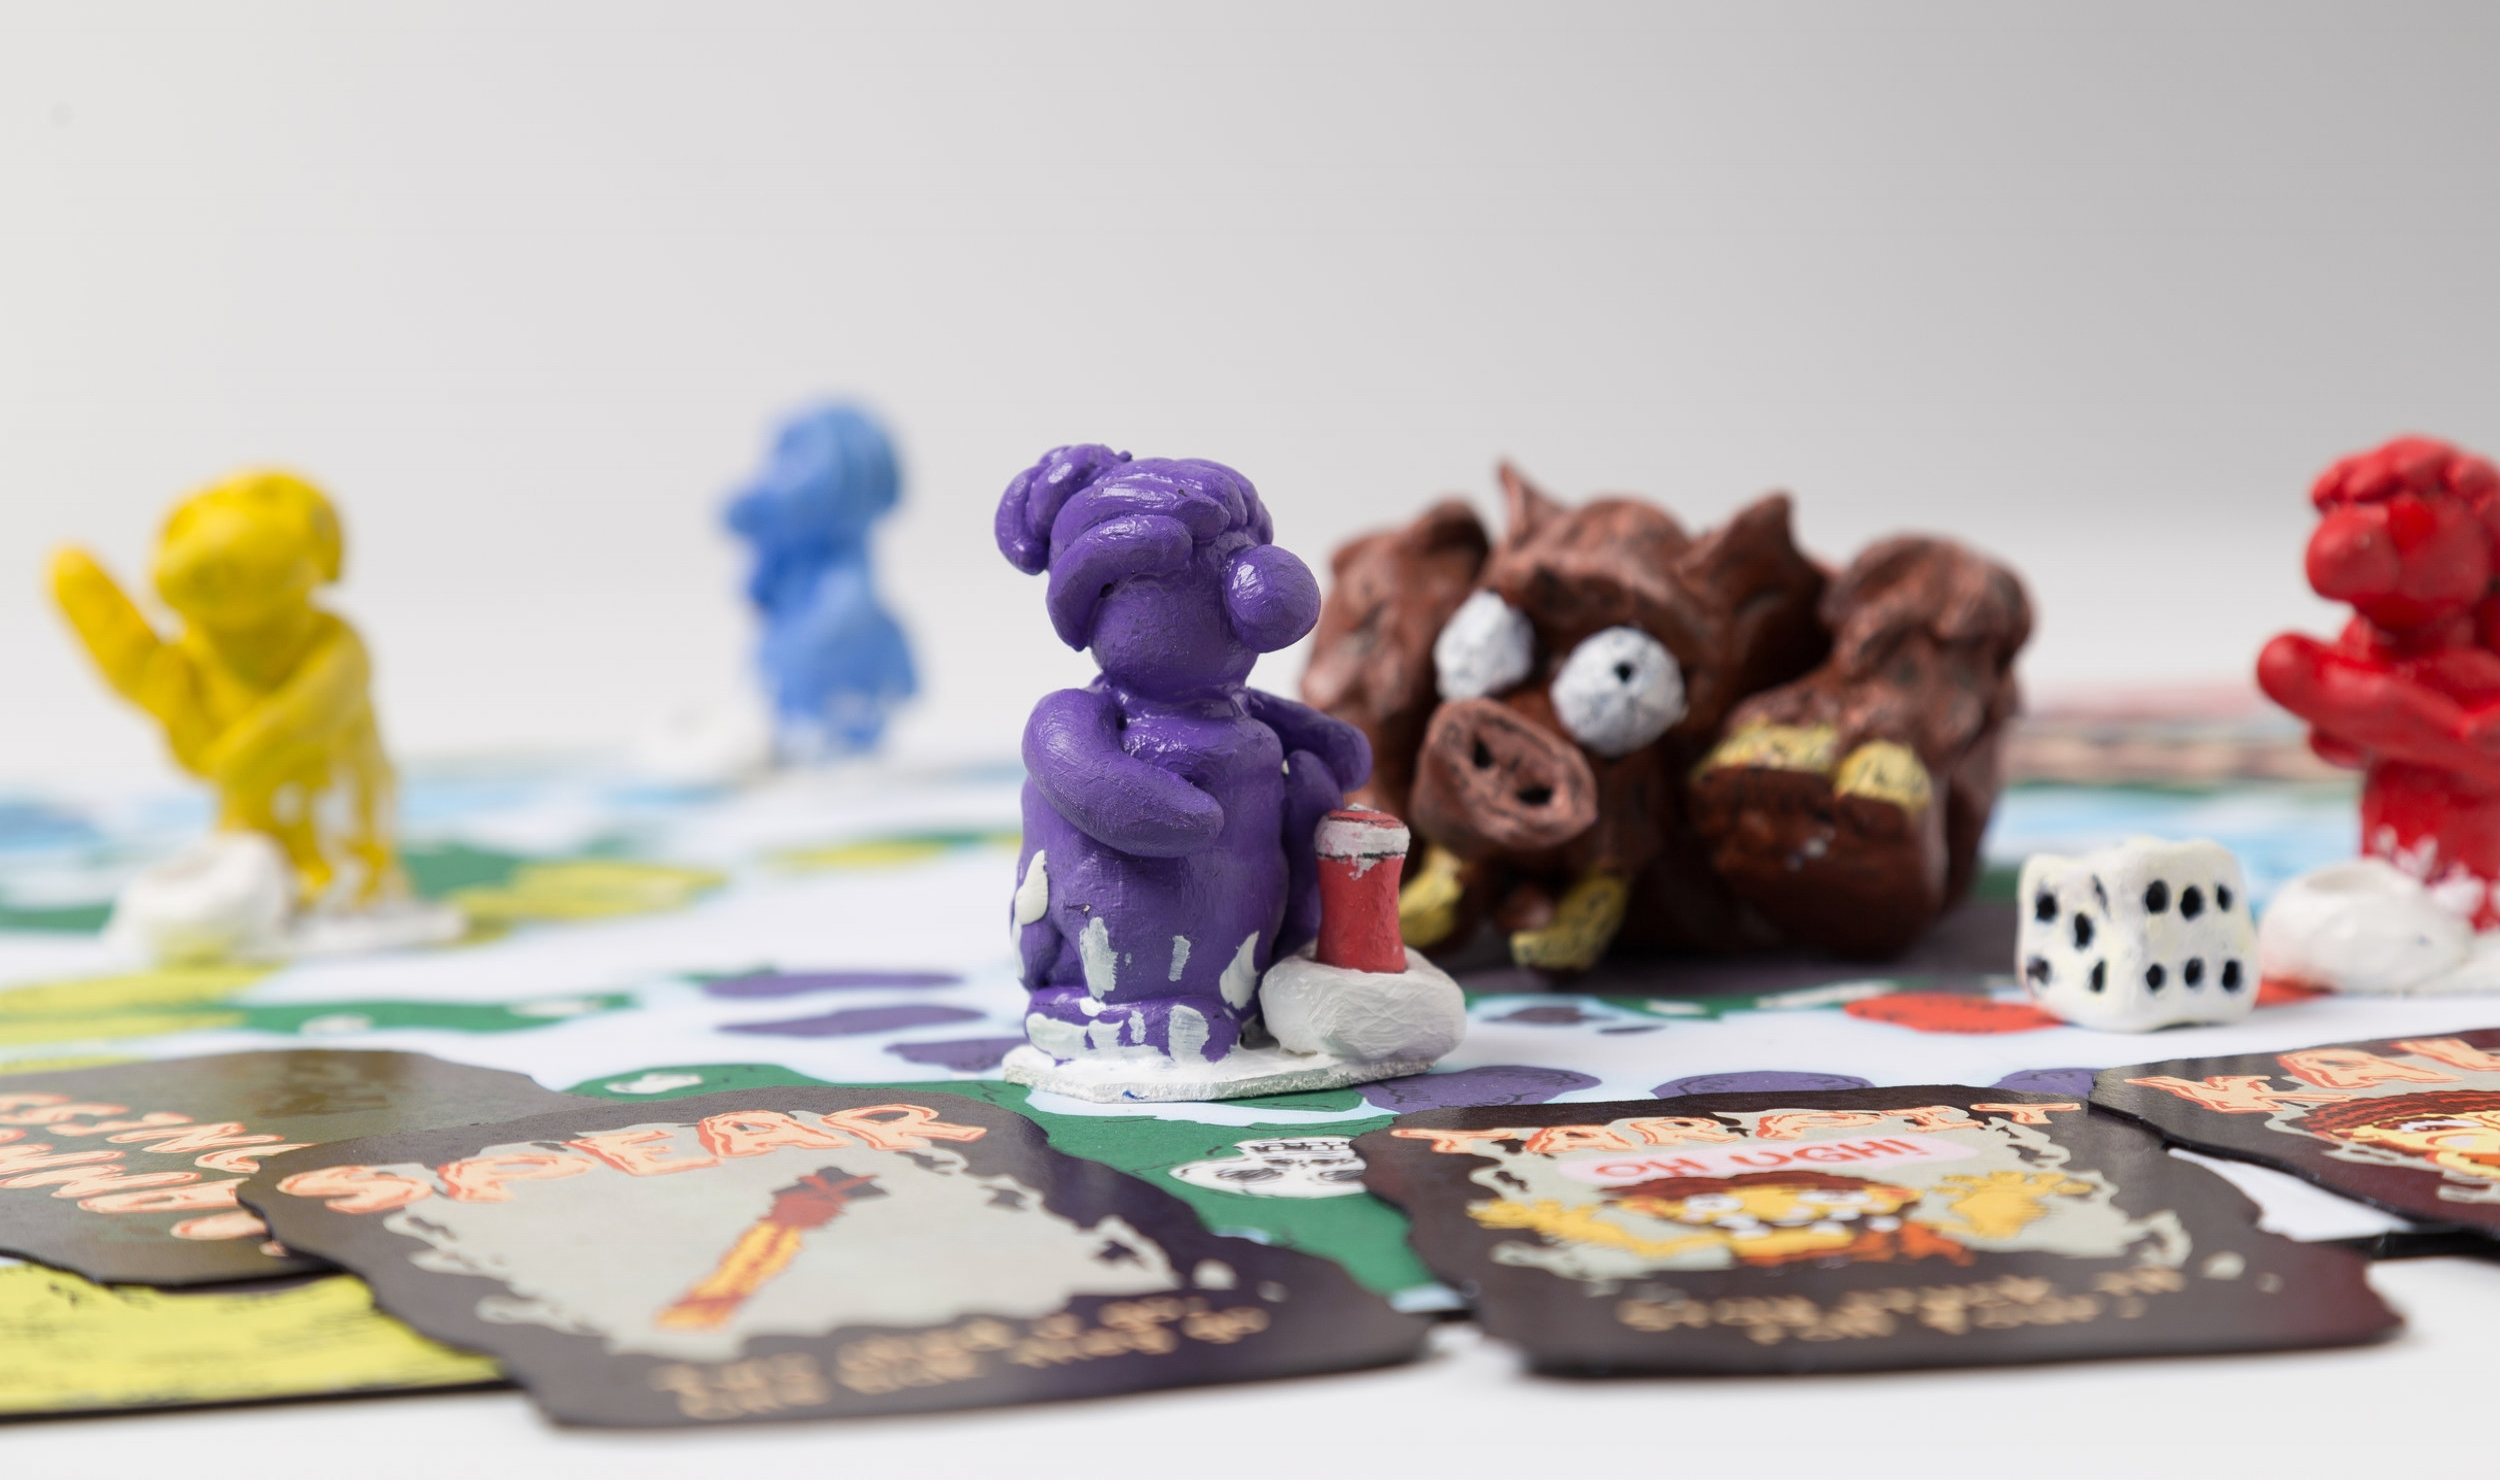 Up to four players can participate. Each player is represented by a colorful cave dweller.